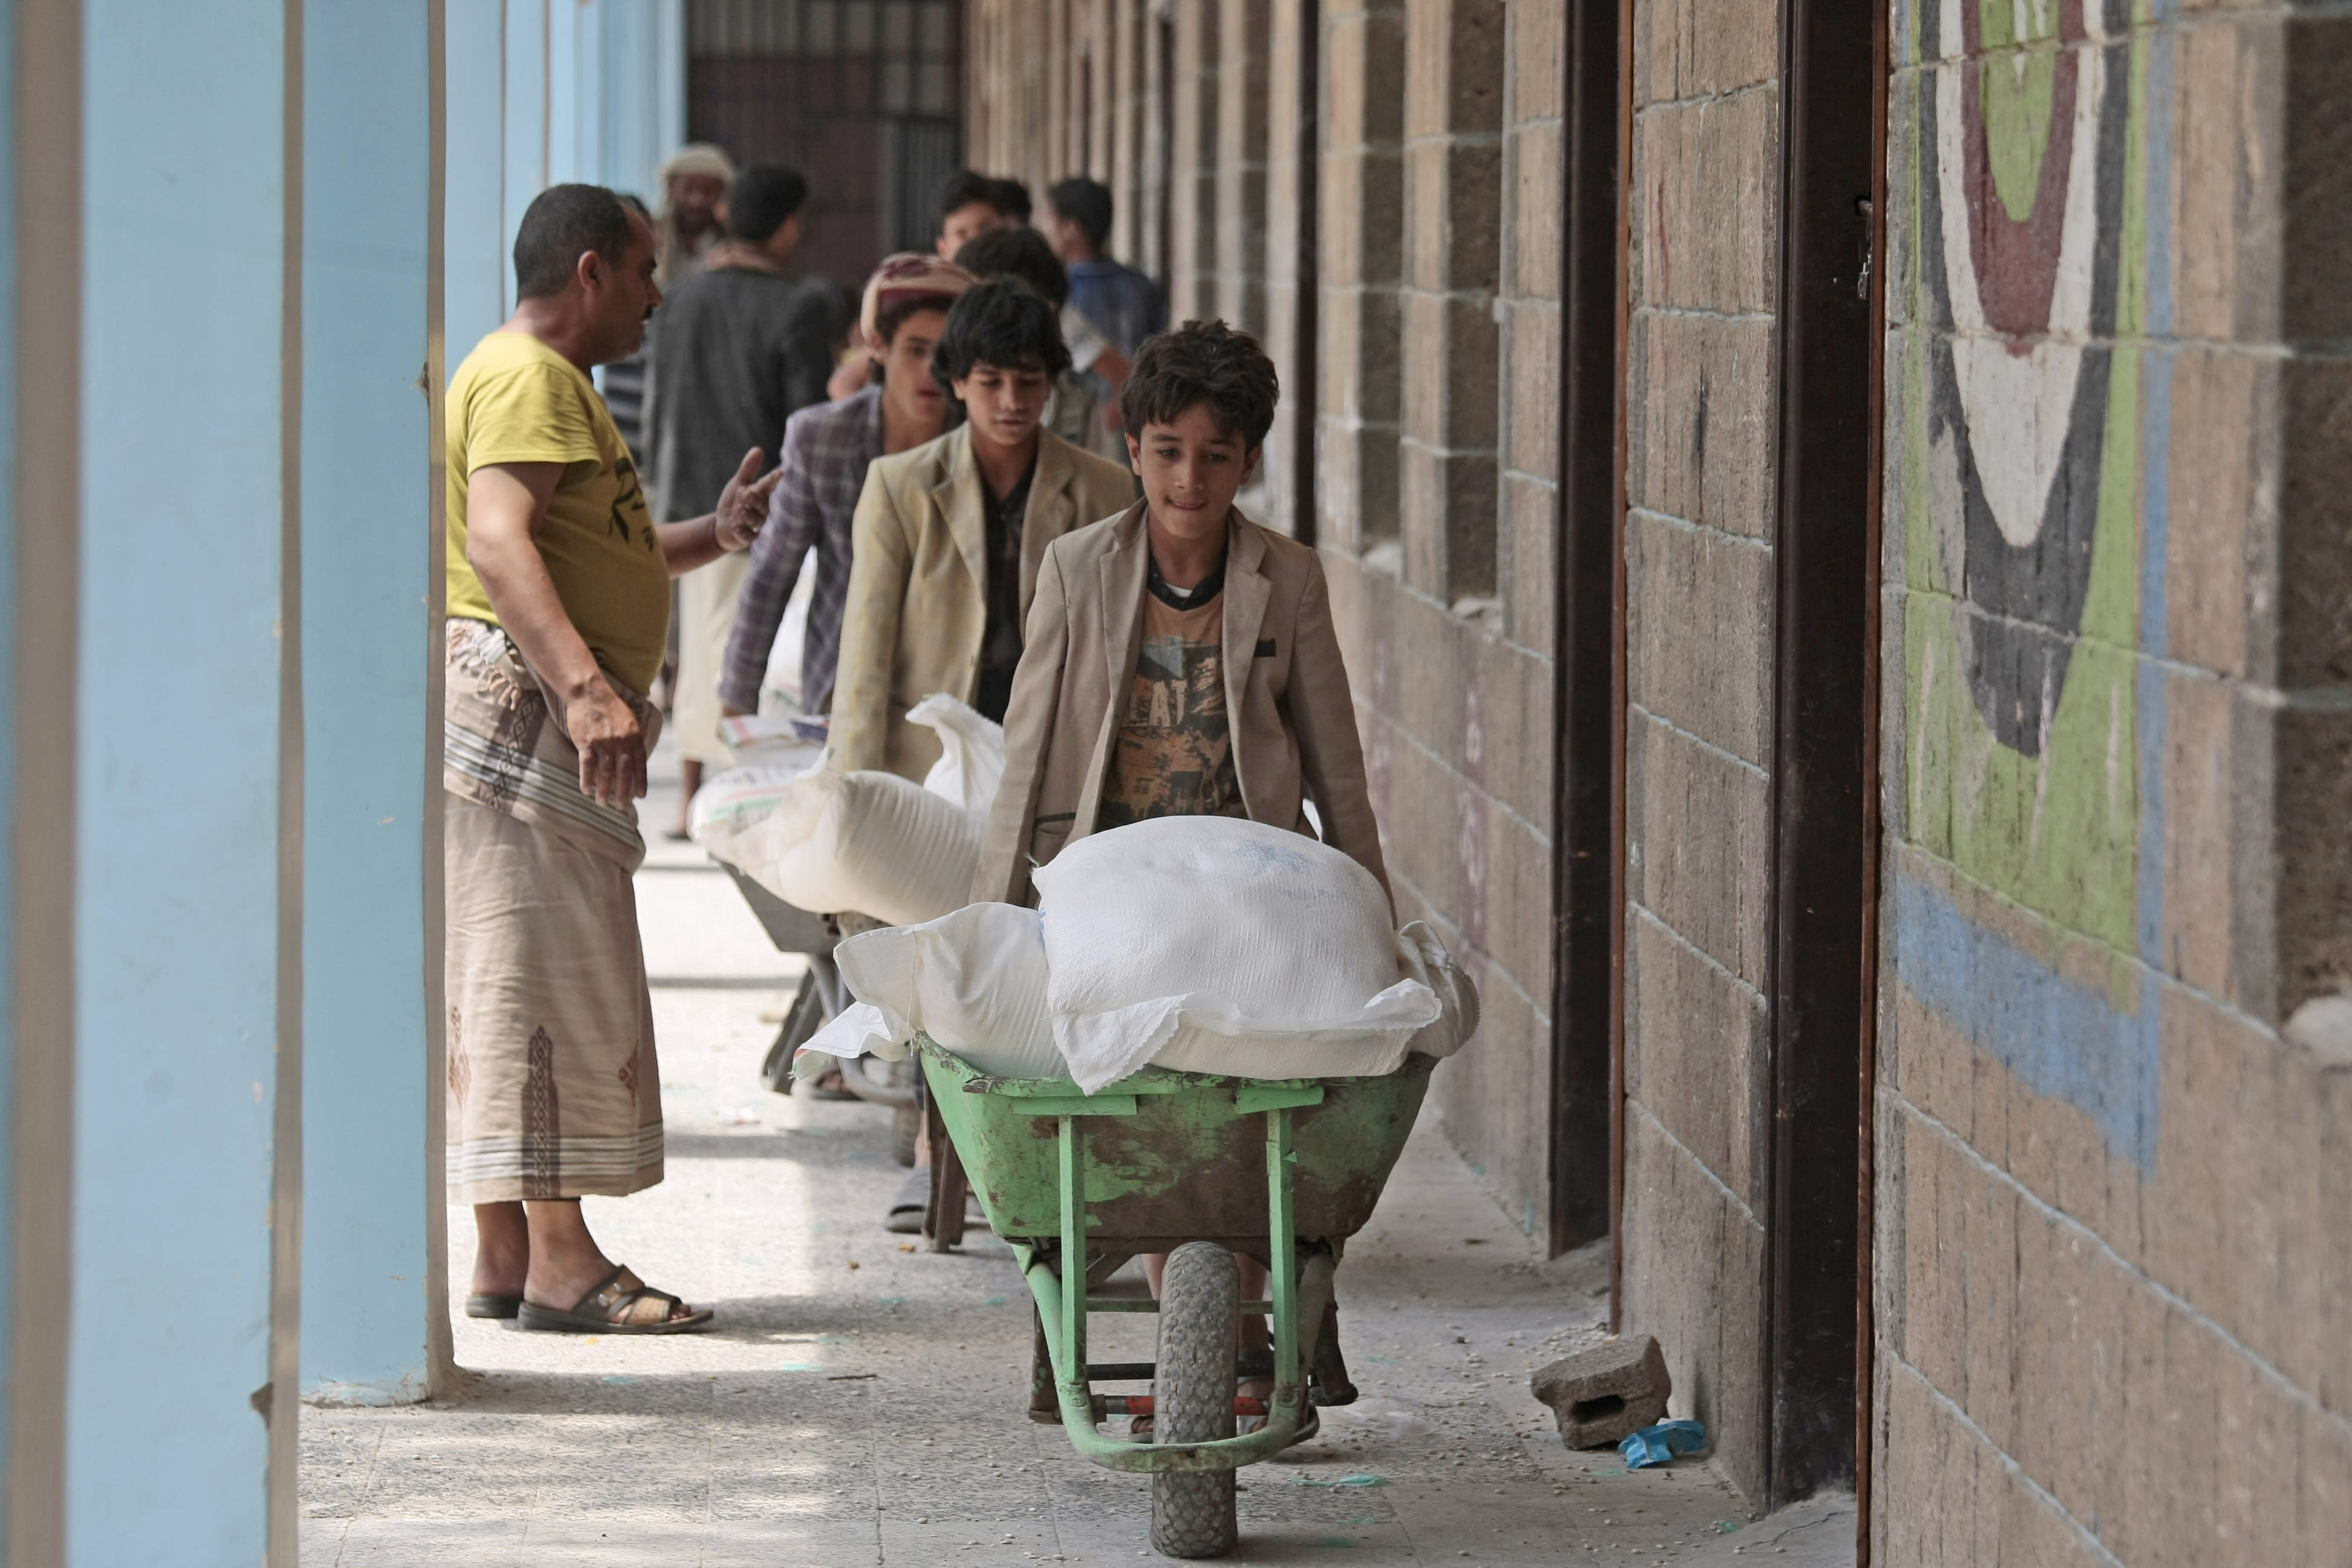 In this Aug. 25, 2019, file photo, displaced Yemenis receive food supplies provided by the World Food Programme, at a school in Sanaa, Yemen. The World Food Program chief warned Thursday, Sept. 17, 2020, that millions of people are closer to starvation because of the deadly combination of conflict, climate change and the COVID-19 pandemic and he urged donor nations and billionaires to help feed them and ensure their survival. (AP Photo/Hani Mohammed, File)